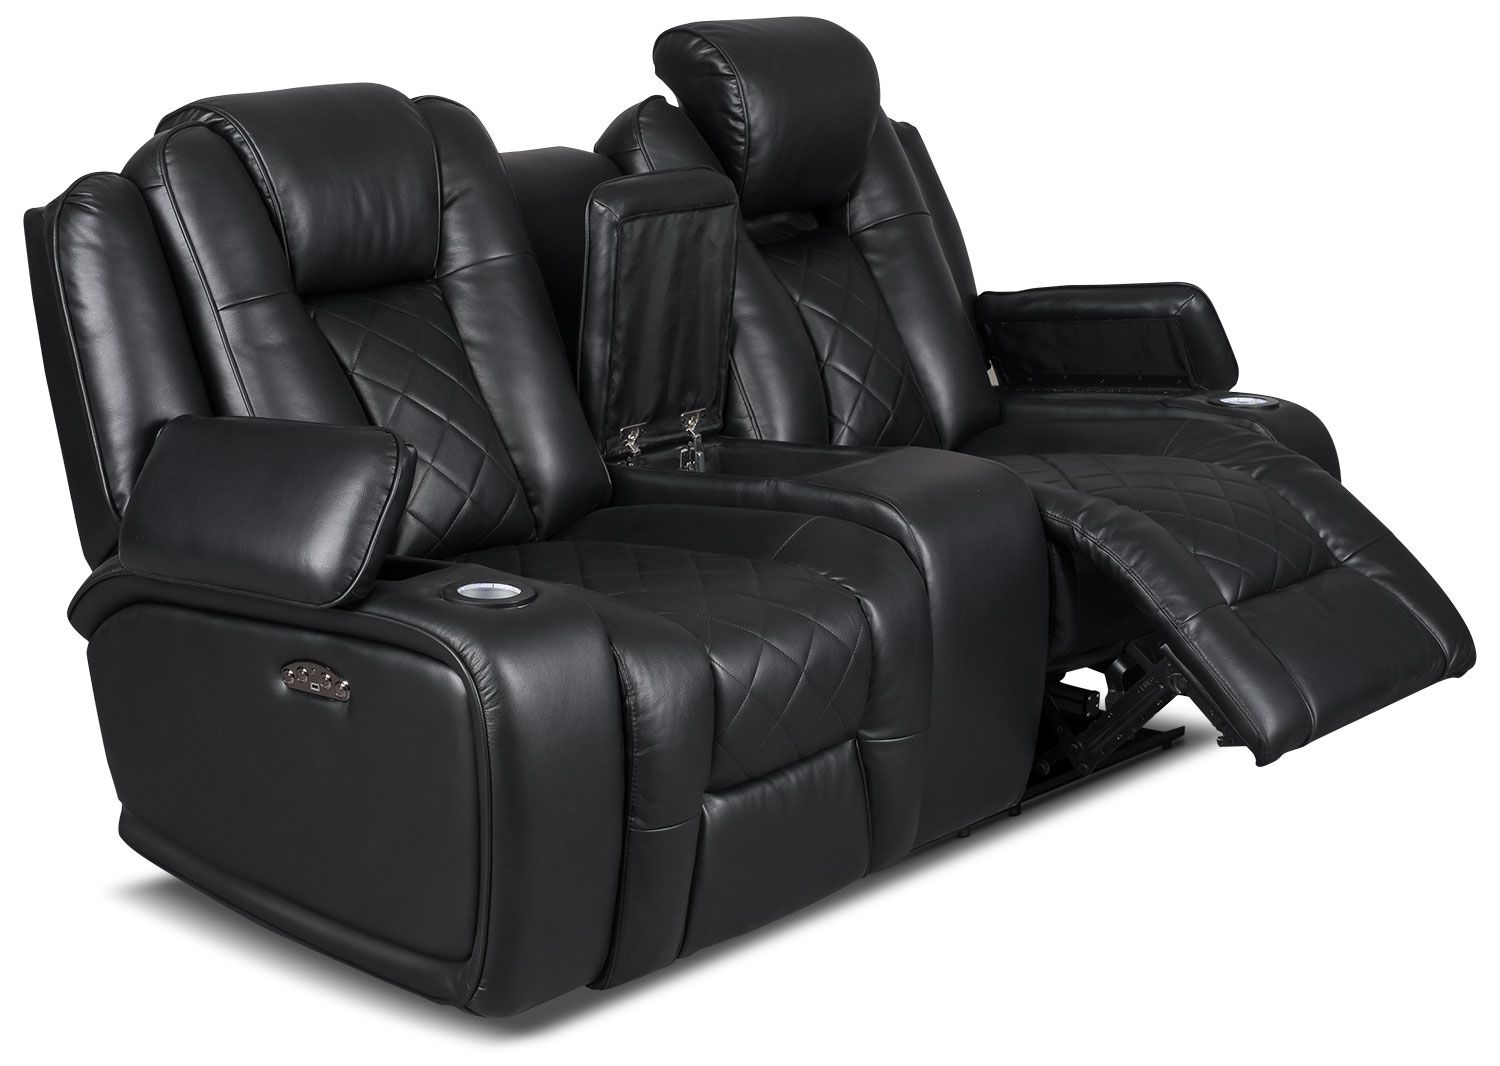 Put Luxury And Convenience Together And You Have This Sleek Lonzo Power Reclining Loveseat Each Armrest Fli Power Reclining Loveseat Love Seat Power Recliners